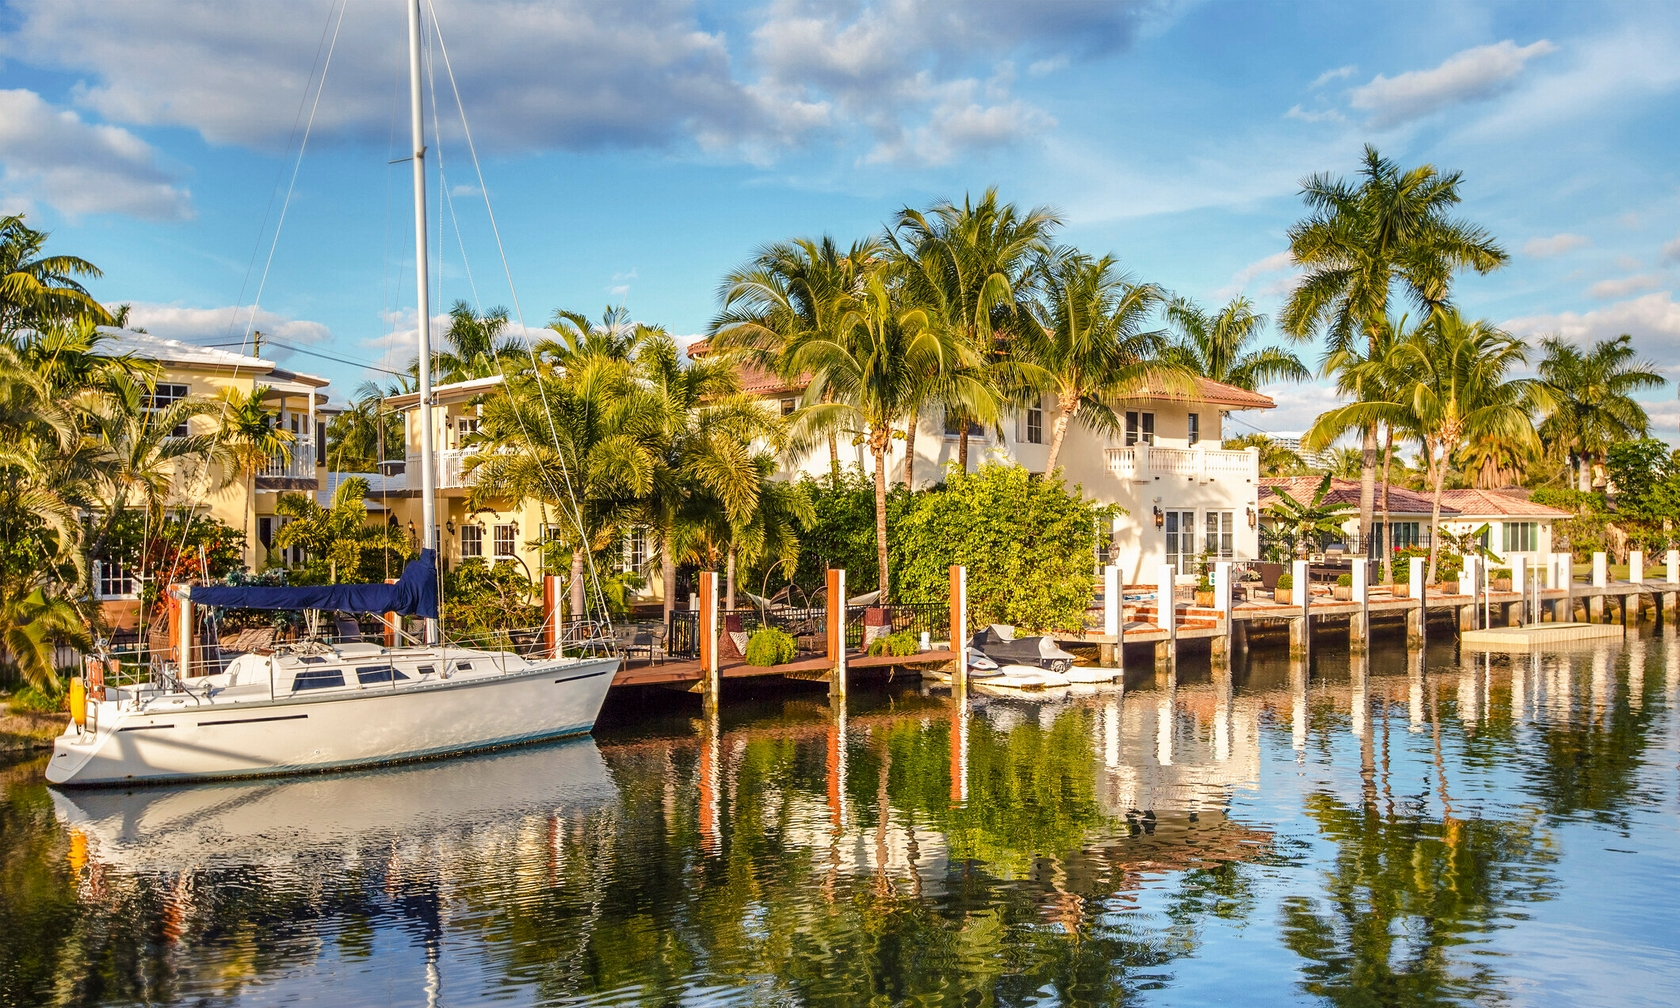 Vacation rental condos in Fort Lauderdale